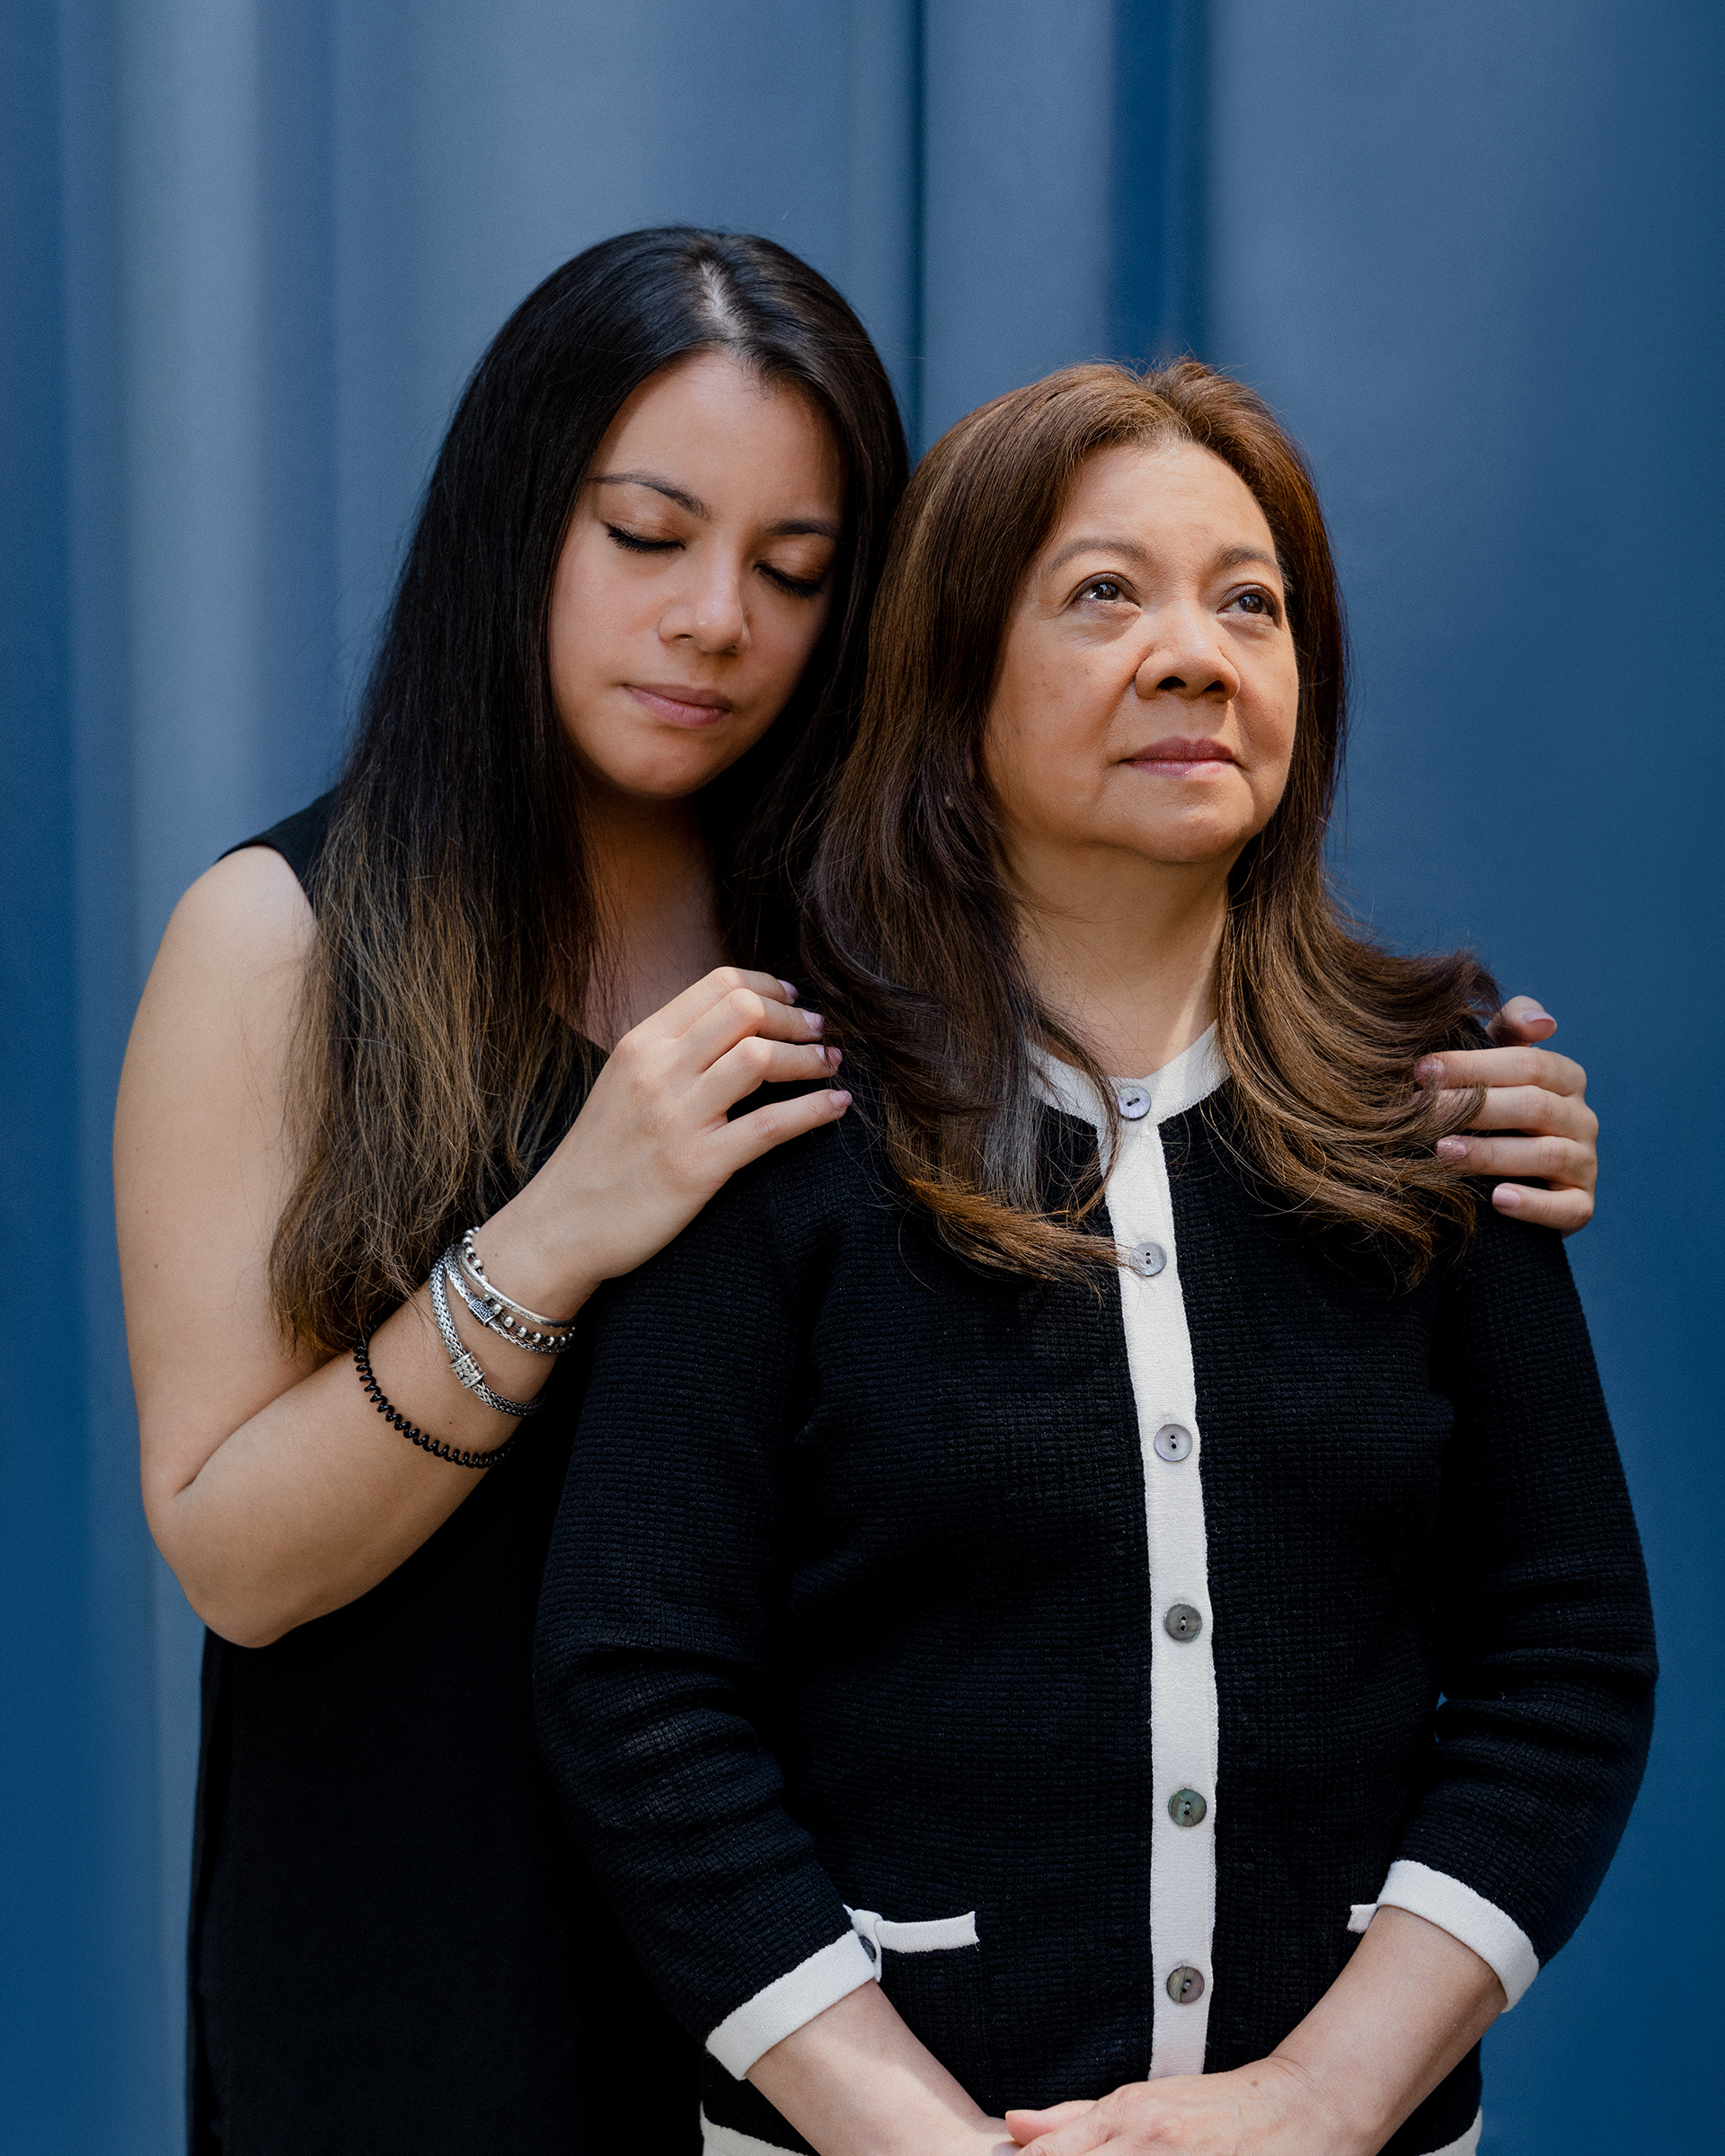 """'WHAT MAKES AMERICA SO BEAUTIFUL.' Elizabeth Kari, 32, closes her eyes as she holds her mother Vilma Kari, 66, inside her lower-Manhattan apartment building on May 21. It's a rare moment of rest for Elizabeth, who took a two-month leave from her fashion-industry job to be her mother's caretaker after Vilma was brutally attacked. On March 29, while she was walking to church, a man kicked her to the ground, stomped on her face and shouted, """"You don't belong here!"""" Because Vilma suffered serious injuries including a fractured pelvis, Elizabeth, her only child, moved her mother into her home and had to help her with basic tasks like sitting up, using the bathroom, even slowly adjusting her legs, inch by inch, to find less painful positions. """"The first week, every movement she made was with me,"""" says Elizabeth, who also assumed the role of her mother's emotional bodyguard, initially shielding her from any news coverage of the high-profile attack, which Vilma is still processing. """"This, I feel, is the scariest time for me to be an Asian,"""" says Vilma, who moved to the U.S. from the Philippines nearly 40 years ago. """"I never felt that before."""" In May, Elizabeth created a campaign called AAP(I belong) in her mother's honor to allow people who have encountered anti-Asian hate to anonymously share their stories online—and to subvert the attacker's racist phrase. """"I don't think it's anyone's right to tell anyone they don't belong in America. That's the cornerstone of what America is,"""" Elizabeth says. """"And that's what makes America so beautiful."""""""